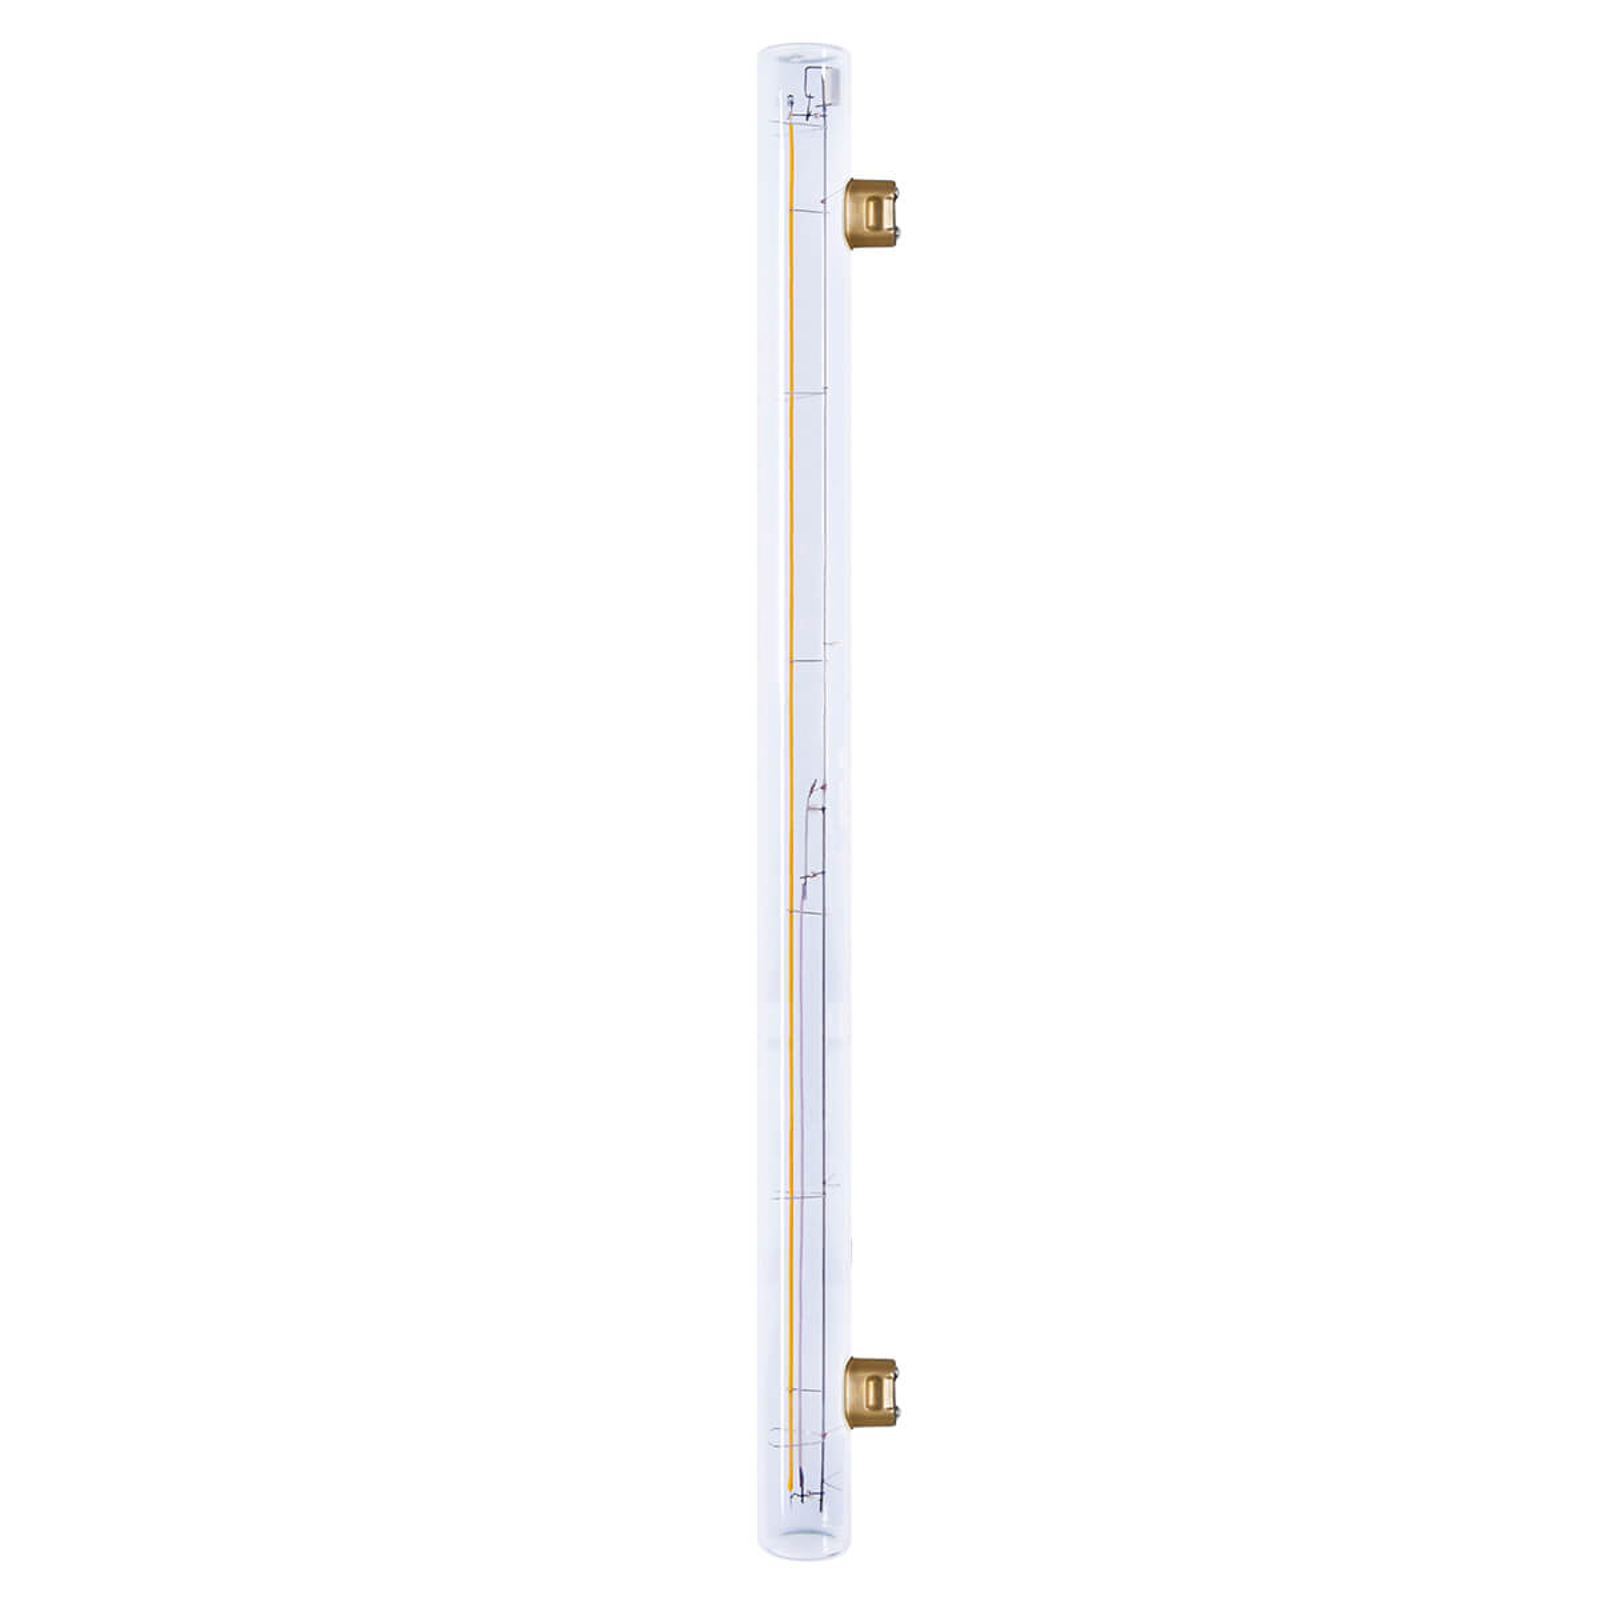 LED tubulaire S14s 12W 922, 500 mm